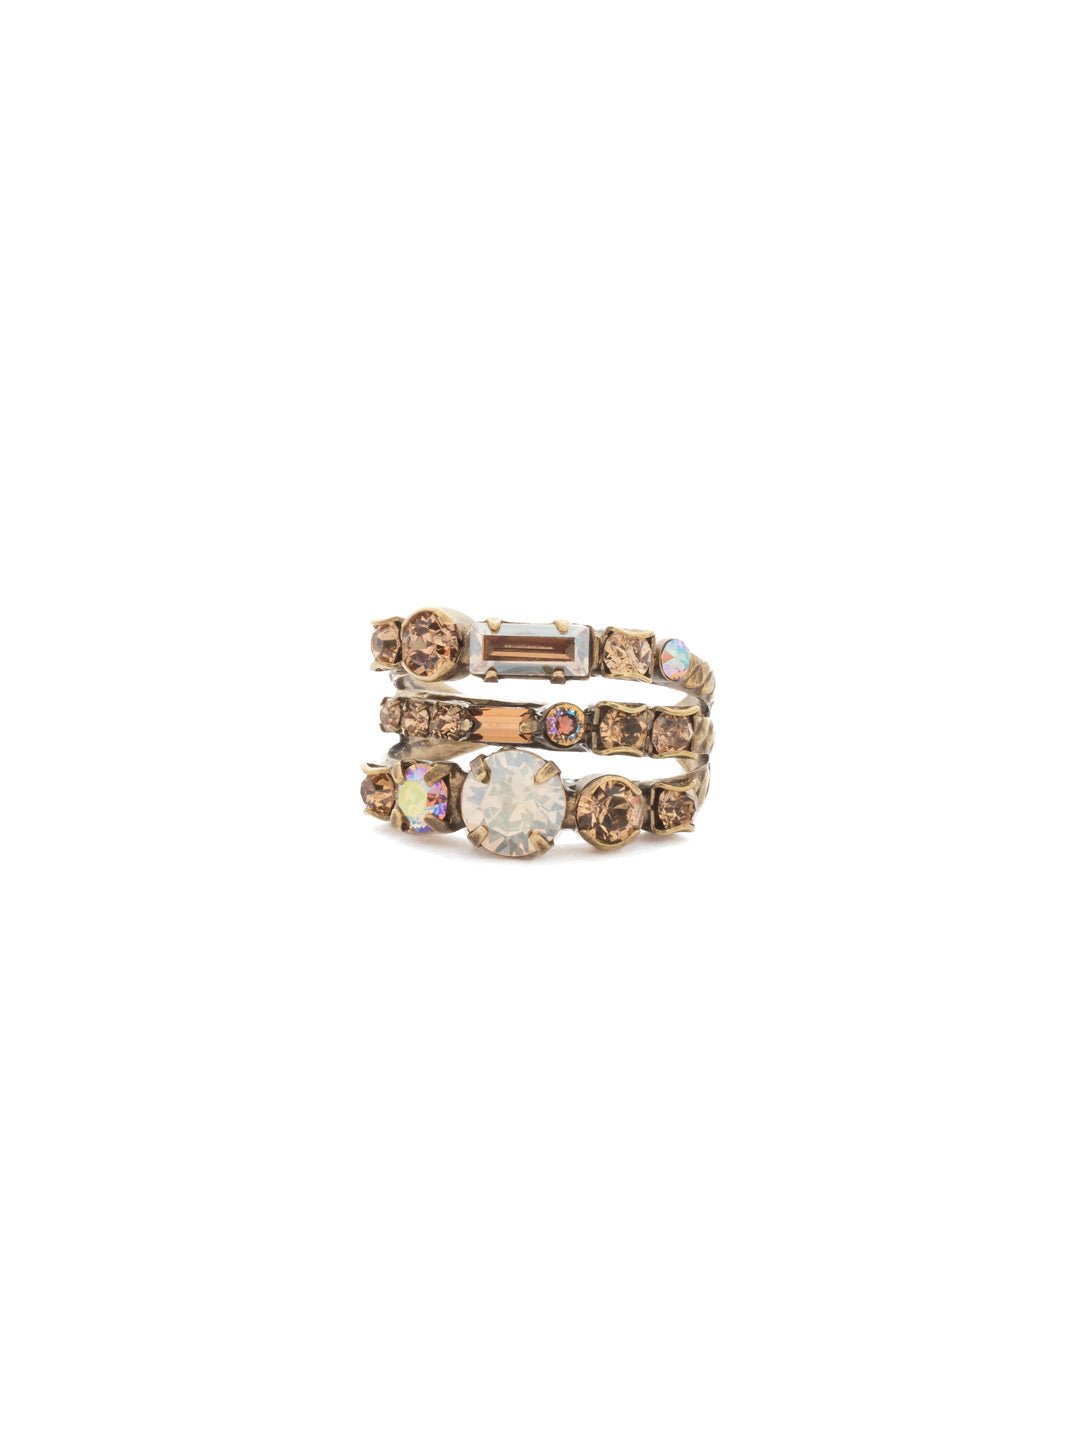 Triple Threat Stacked Ring - RDK23AGNT